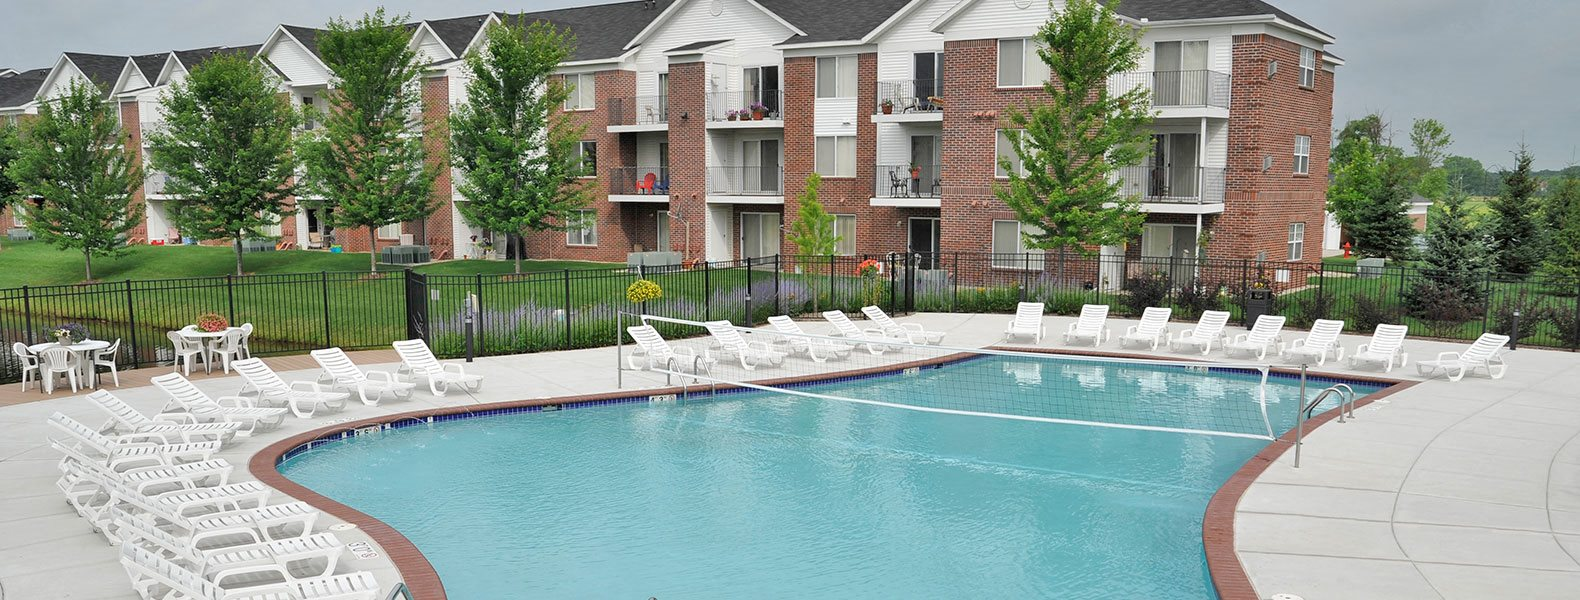 Resort-Style Pool at Towne Lakes Apartments, Grand Chute